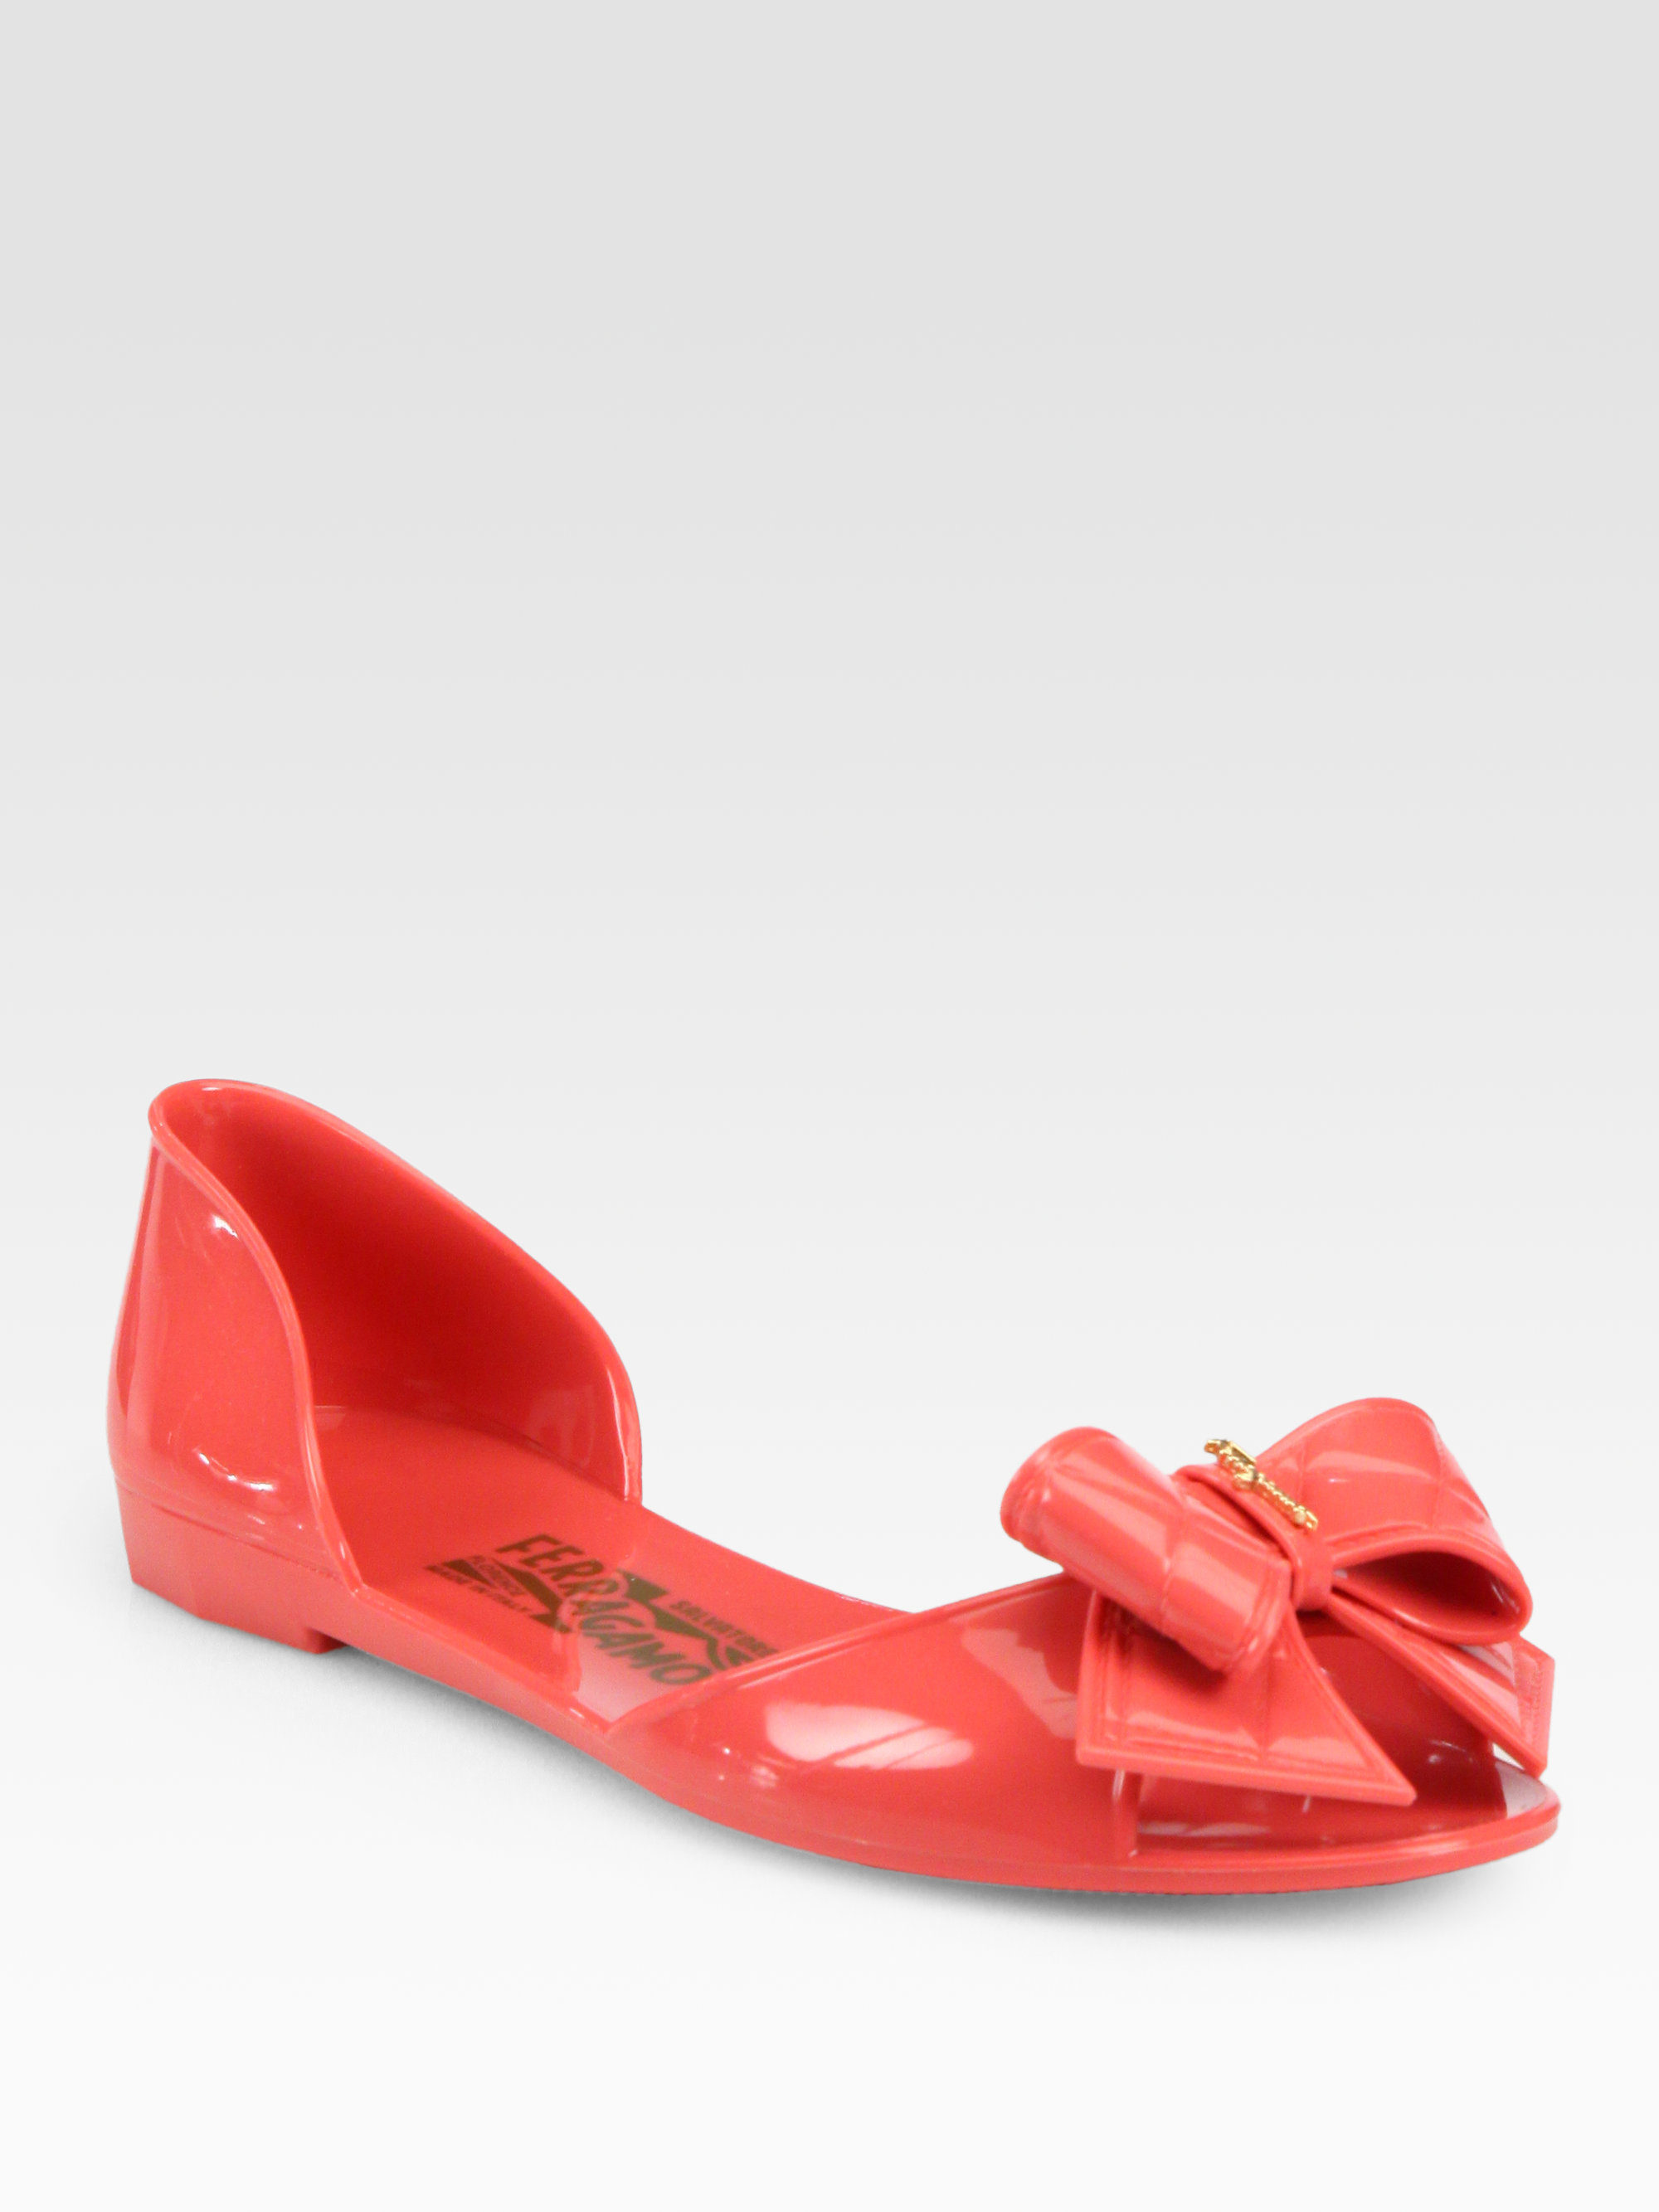 Lyst - Ferragamo Barbados Jelly Sandals In Red-4060